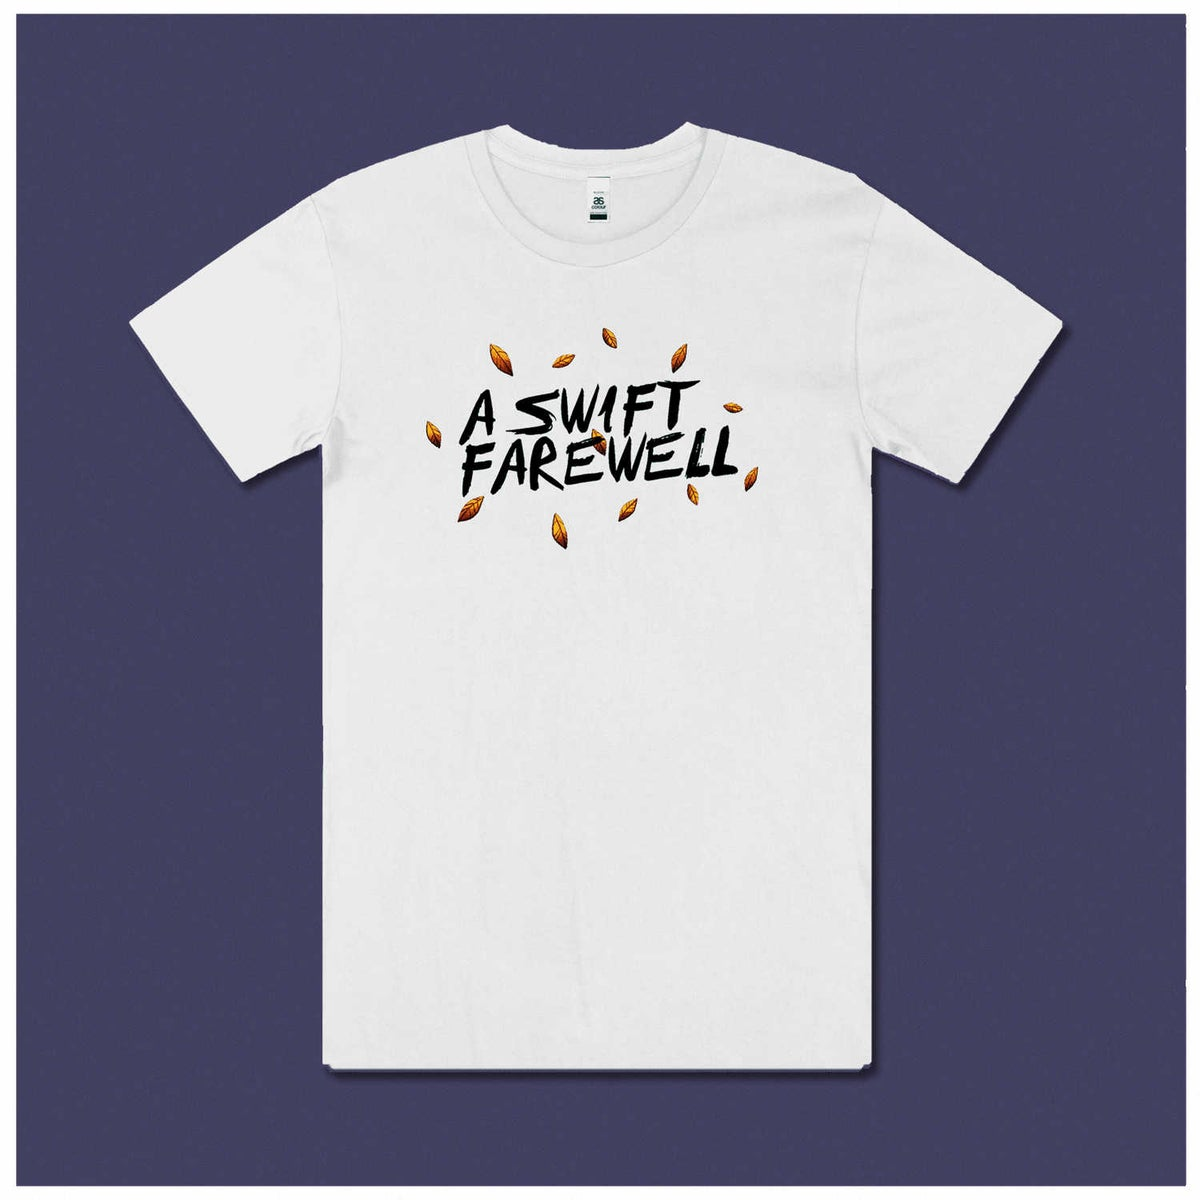 Image of 'A Swift Farewell' Tee